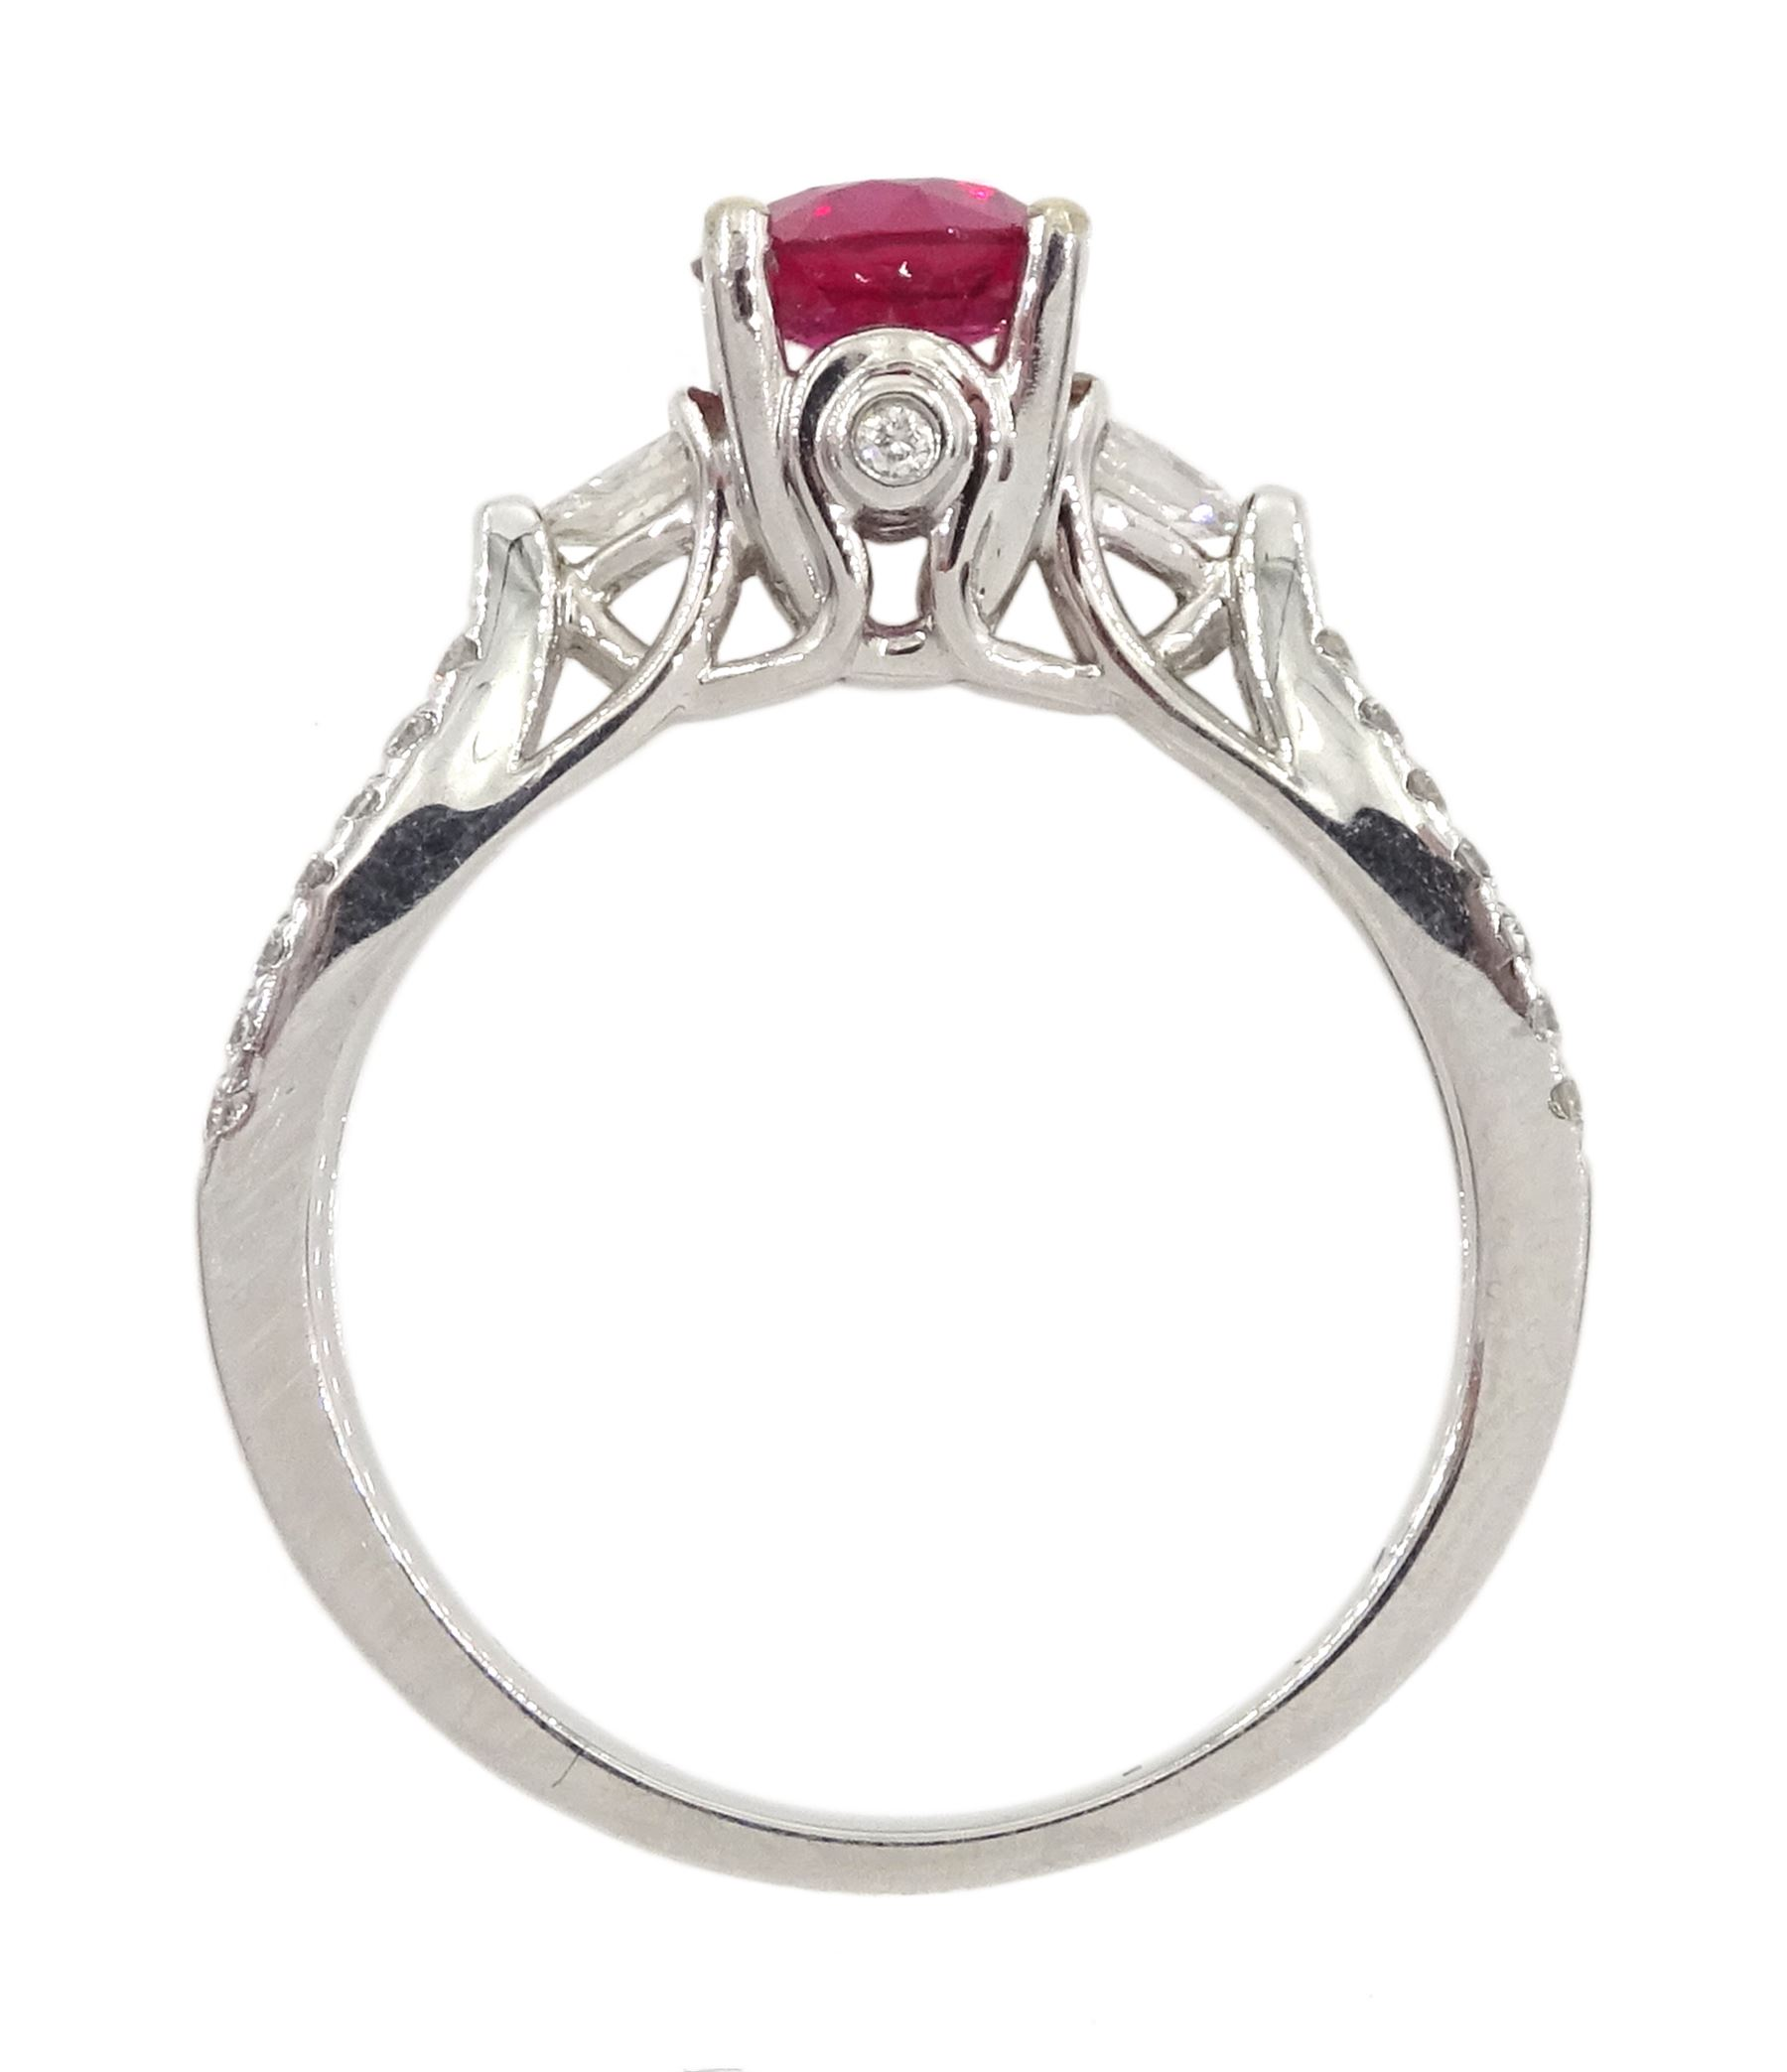 18ct white gold round ruby ring - Image 4 of 4